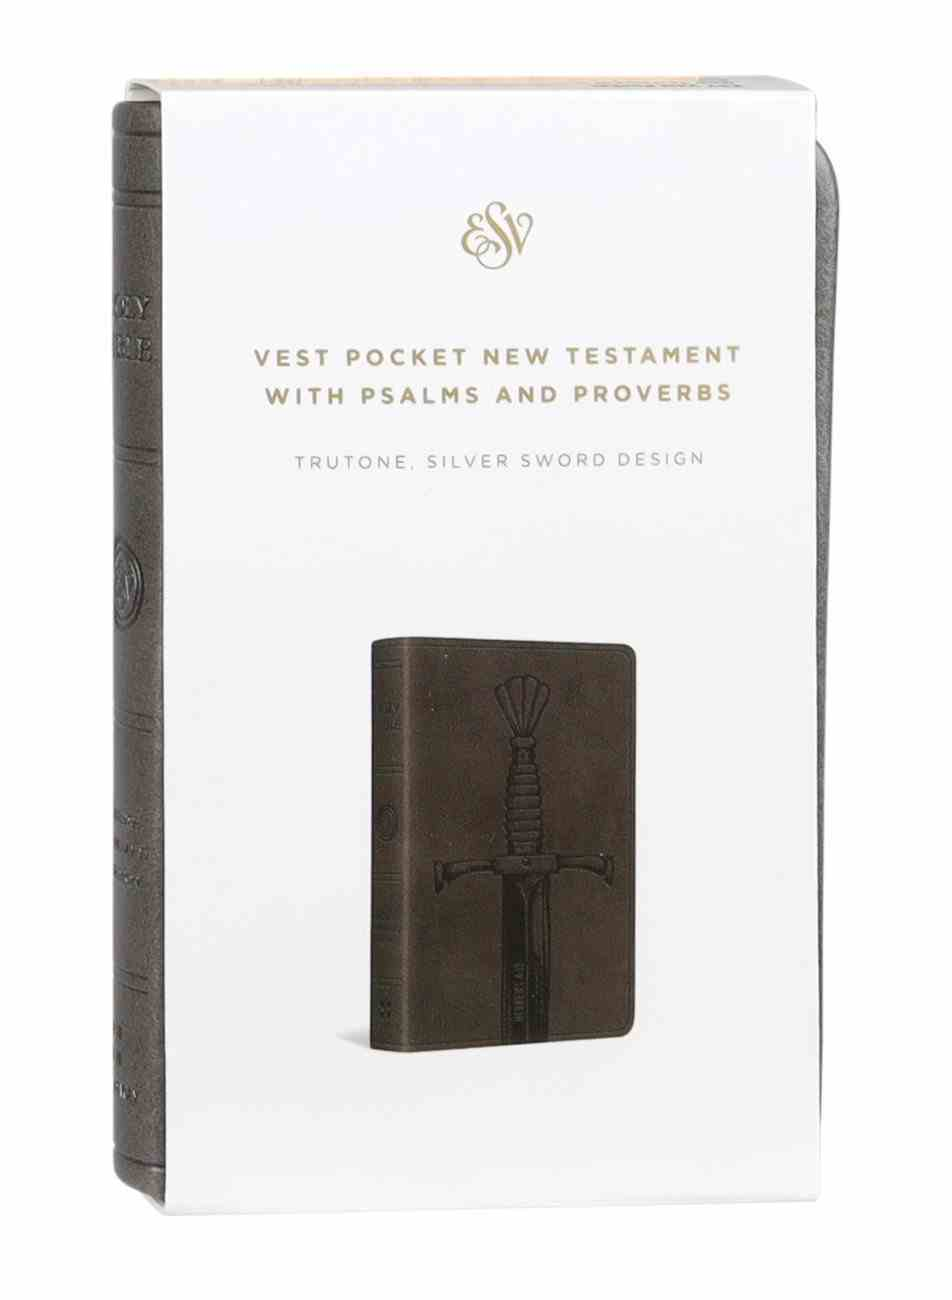 ESV Vest Pocket New Testament With Psalms and Proverbs Silver Sword (Black Letter Edition) Imitation Leather